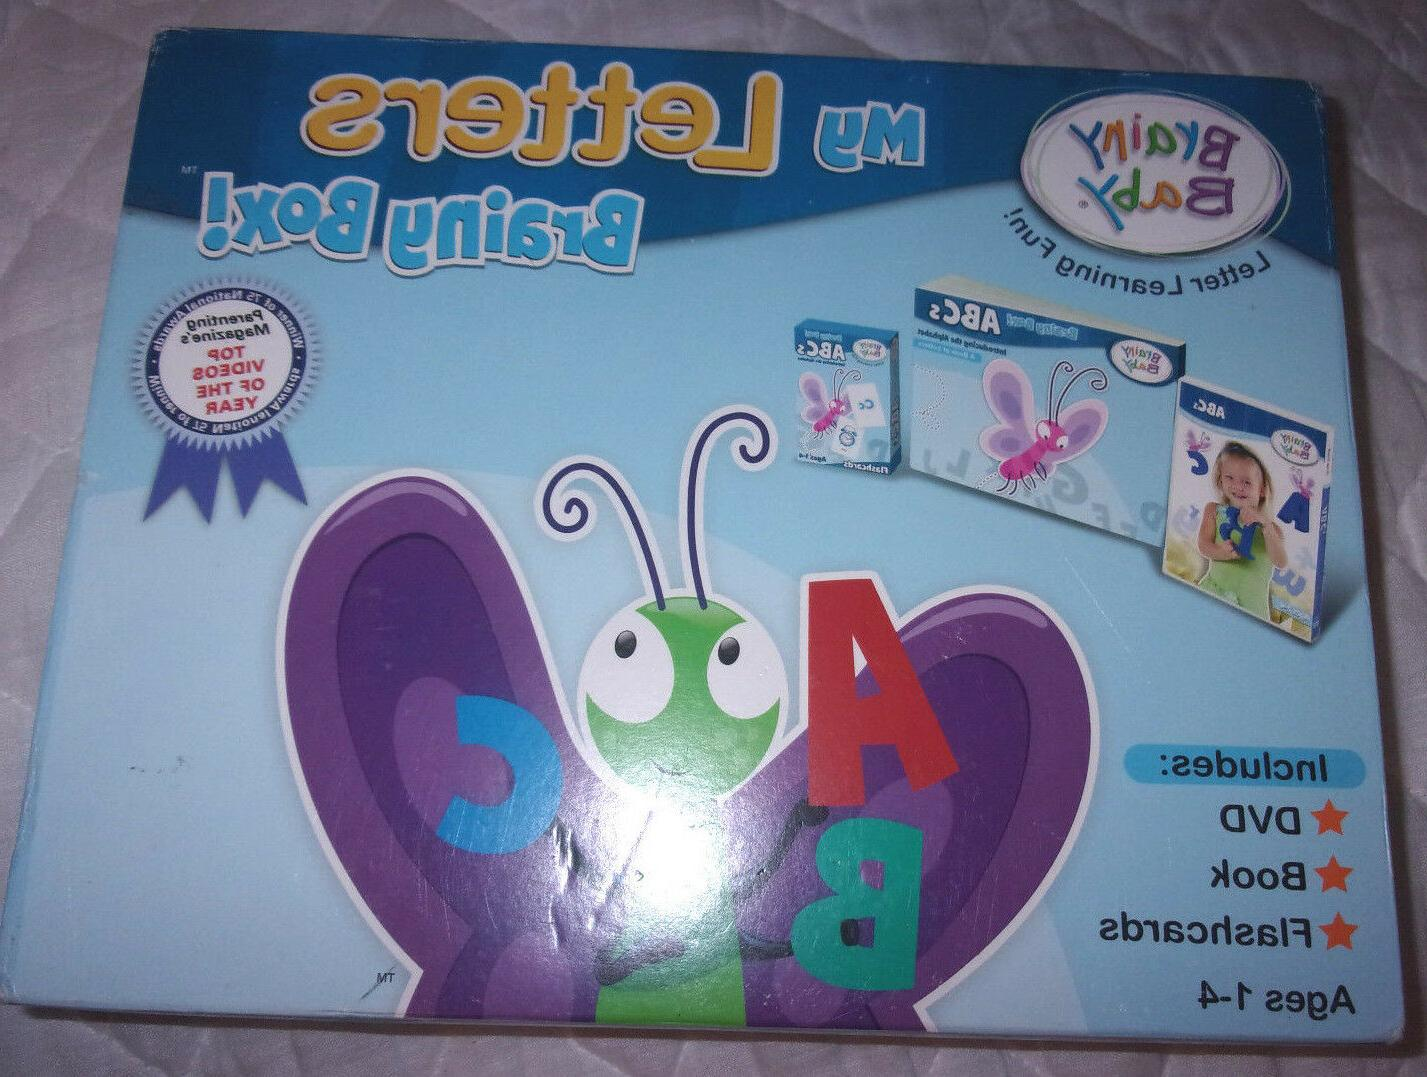 my letters brainy box dvd book flashcards